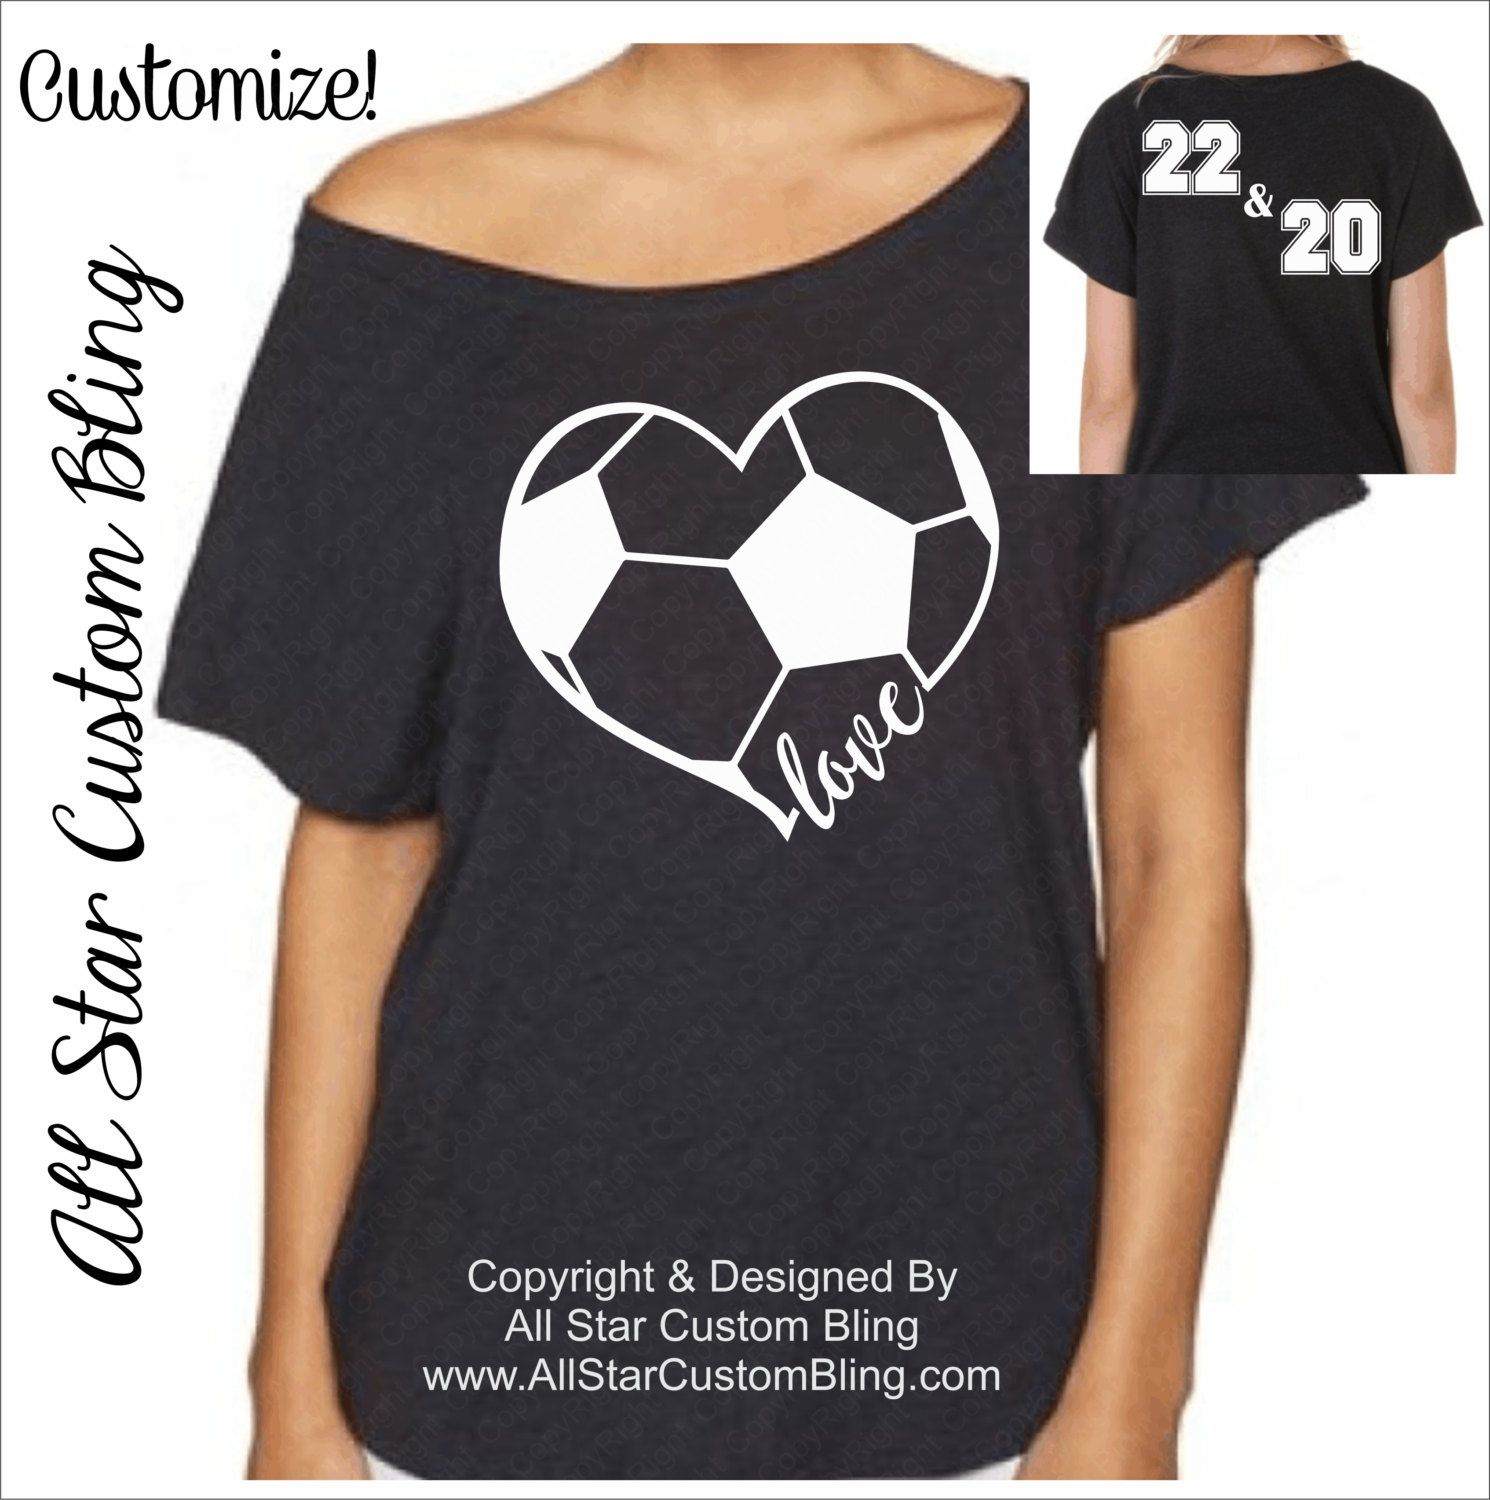 ce0bd007e3f9 Custom Glitter Soccer Heart Off Shoulder Shirt With Two Player Numbers,  Glitter Soccer Mom Shirt, Soccer Dolman Shirt, Soccer Heart Love Tee by ...